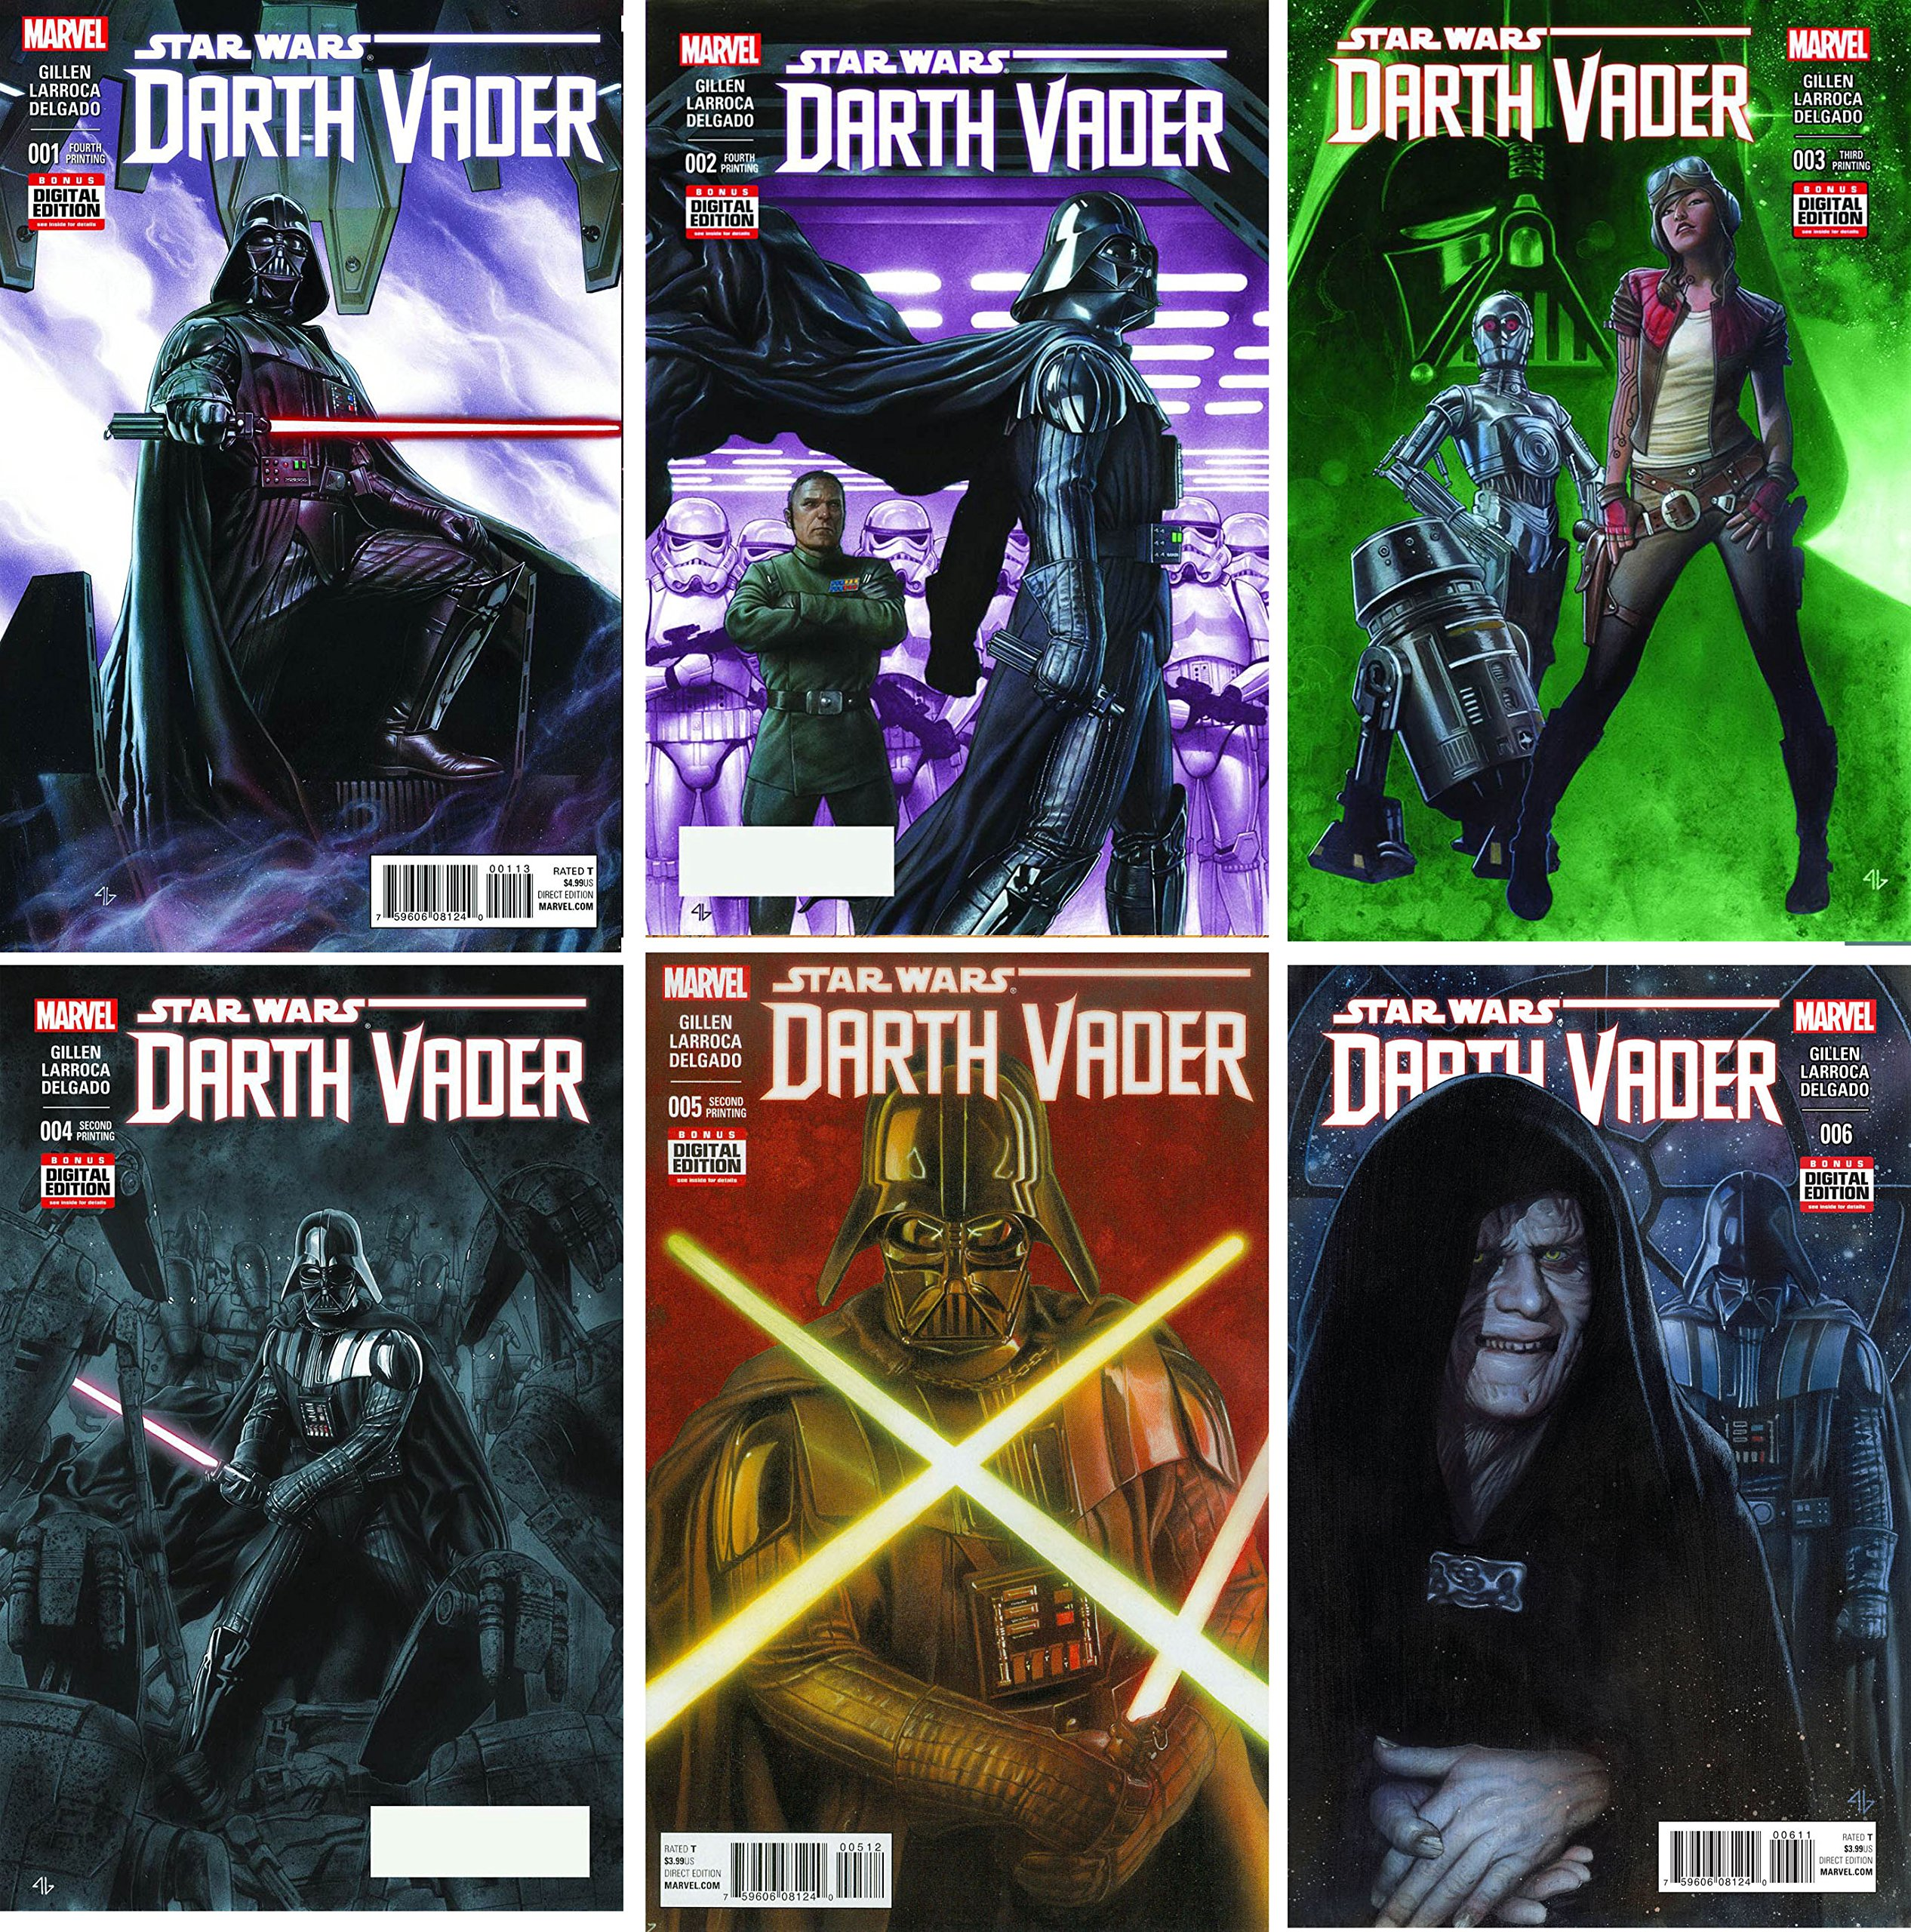 Star Wars Darth Vader Issue 1 6 Set Bundle Of Six 6 2015 Marvel Comics 0643597586955 Salvador Larroca Kieron Gillen Books